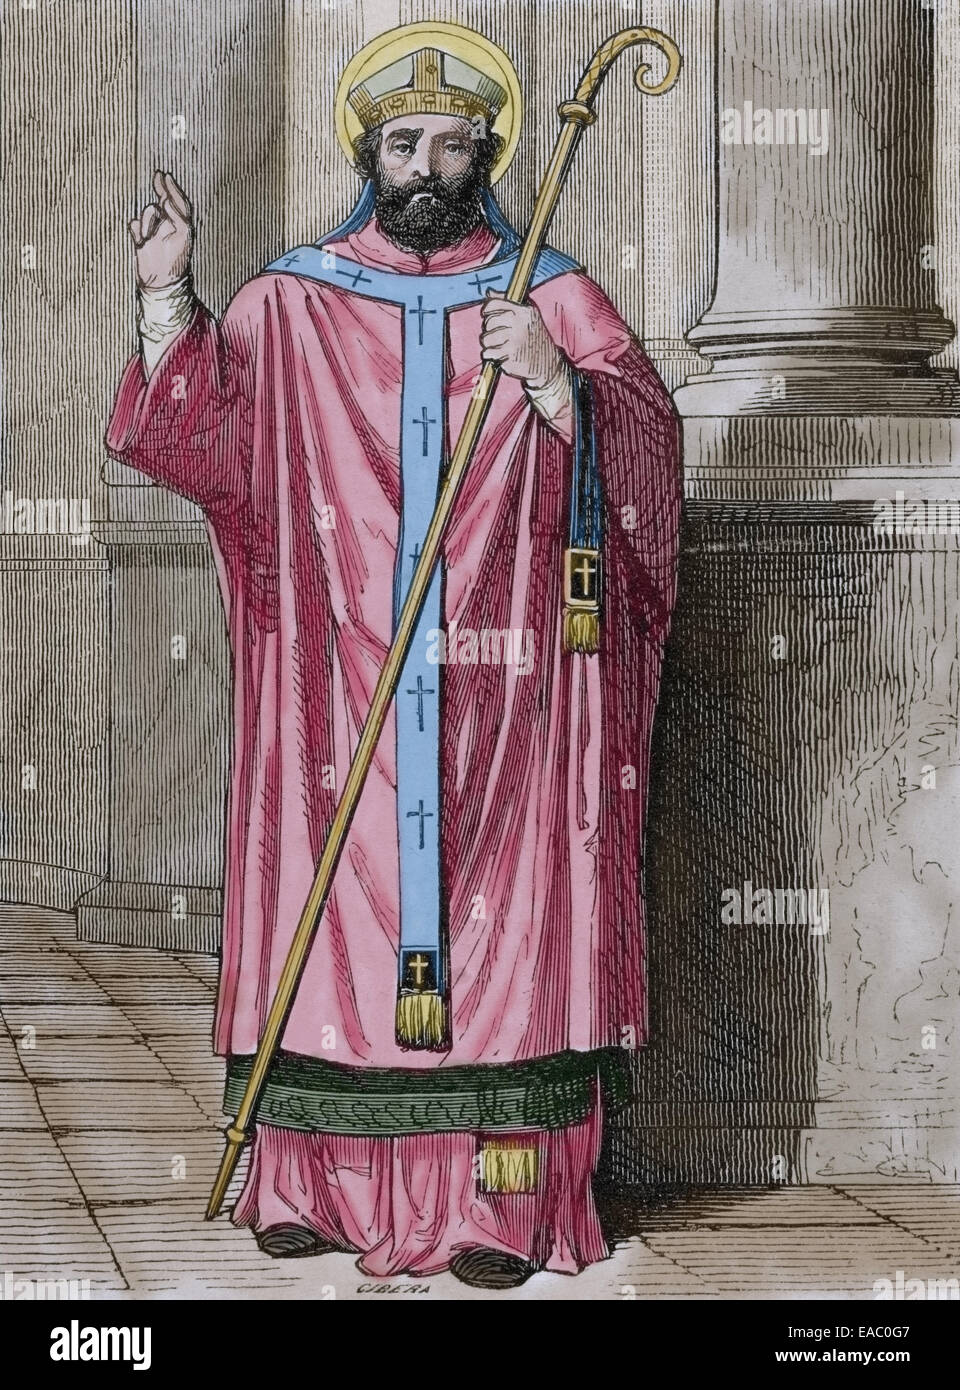 Maximus the Confessor (580-662). Christian monk, theologian, and scholar. Engraving by Cibera. Ano Cristiano, 1852. - Stock Image